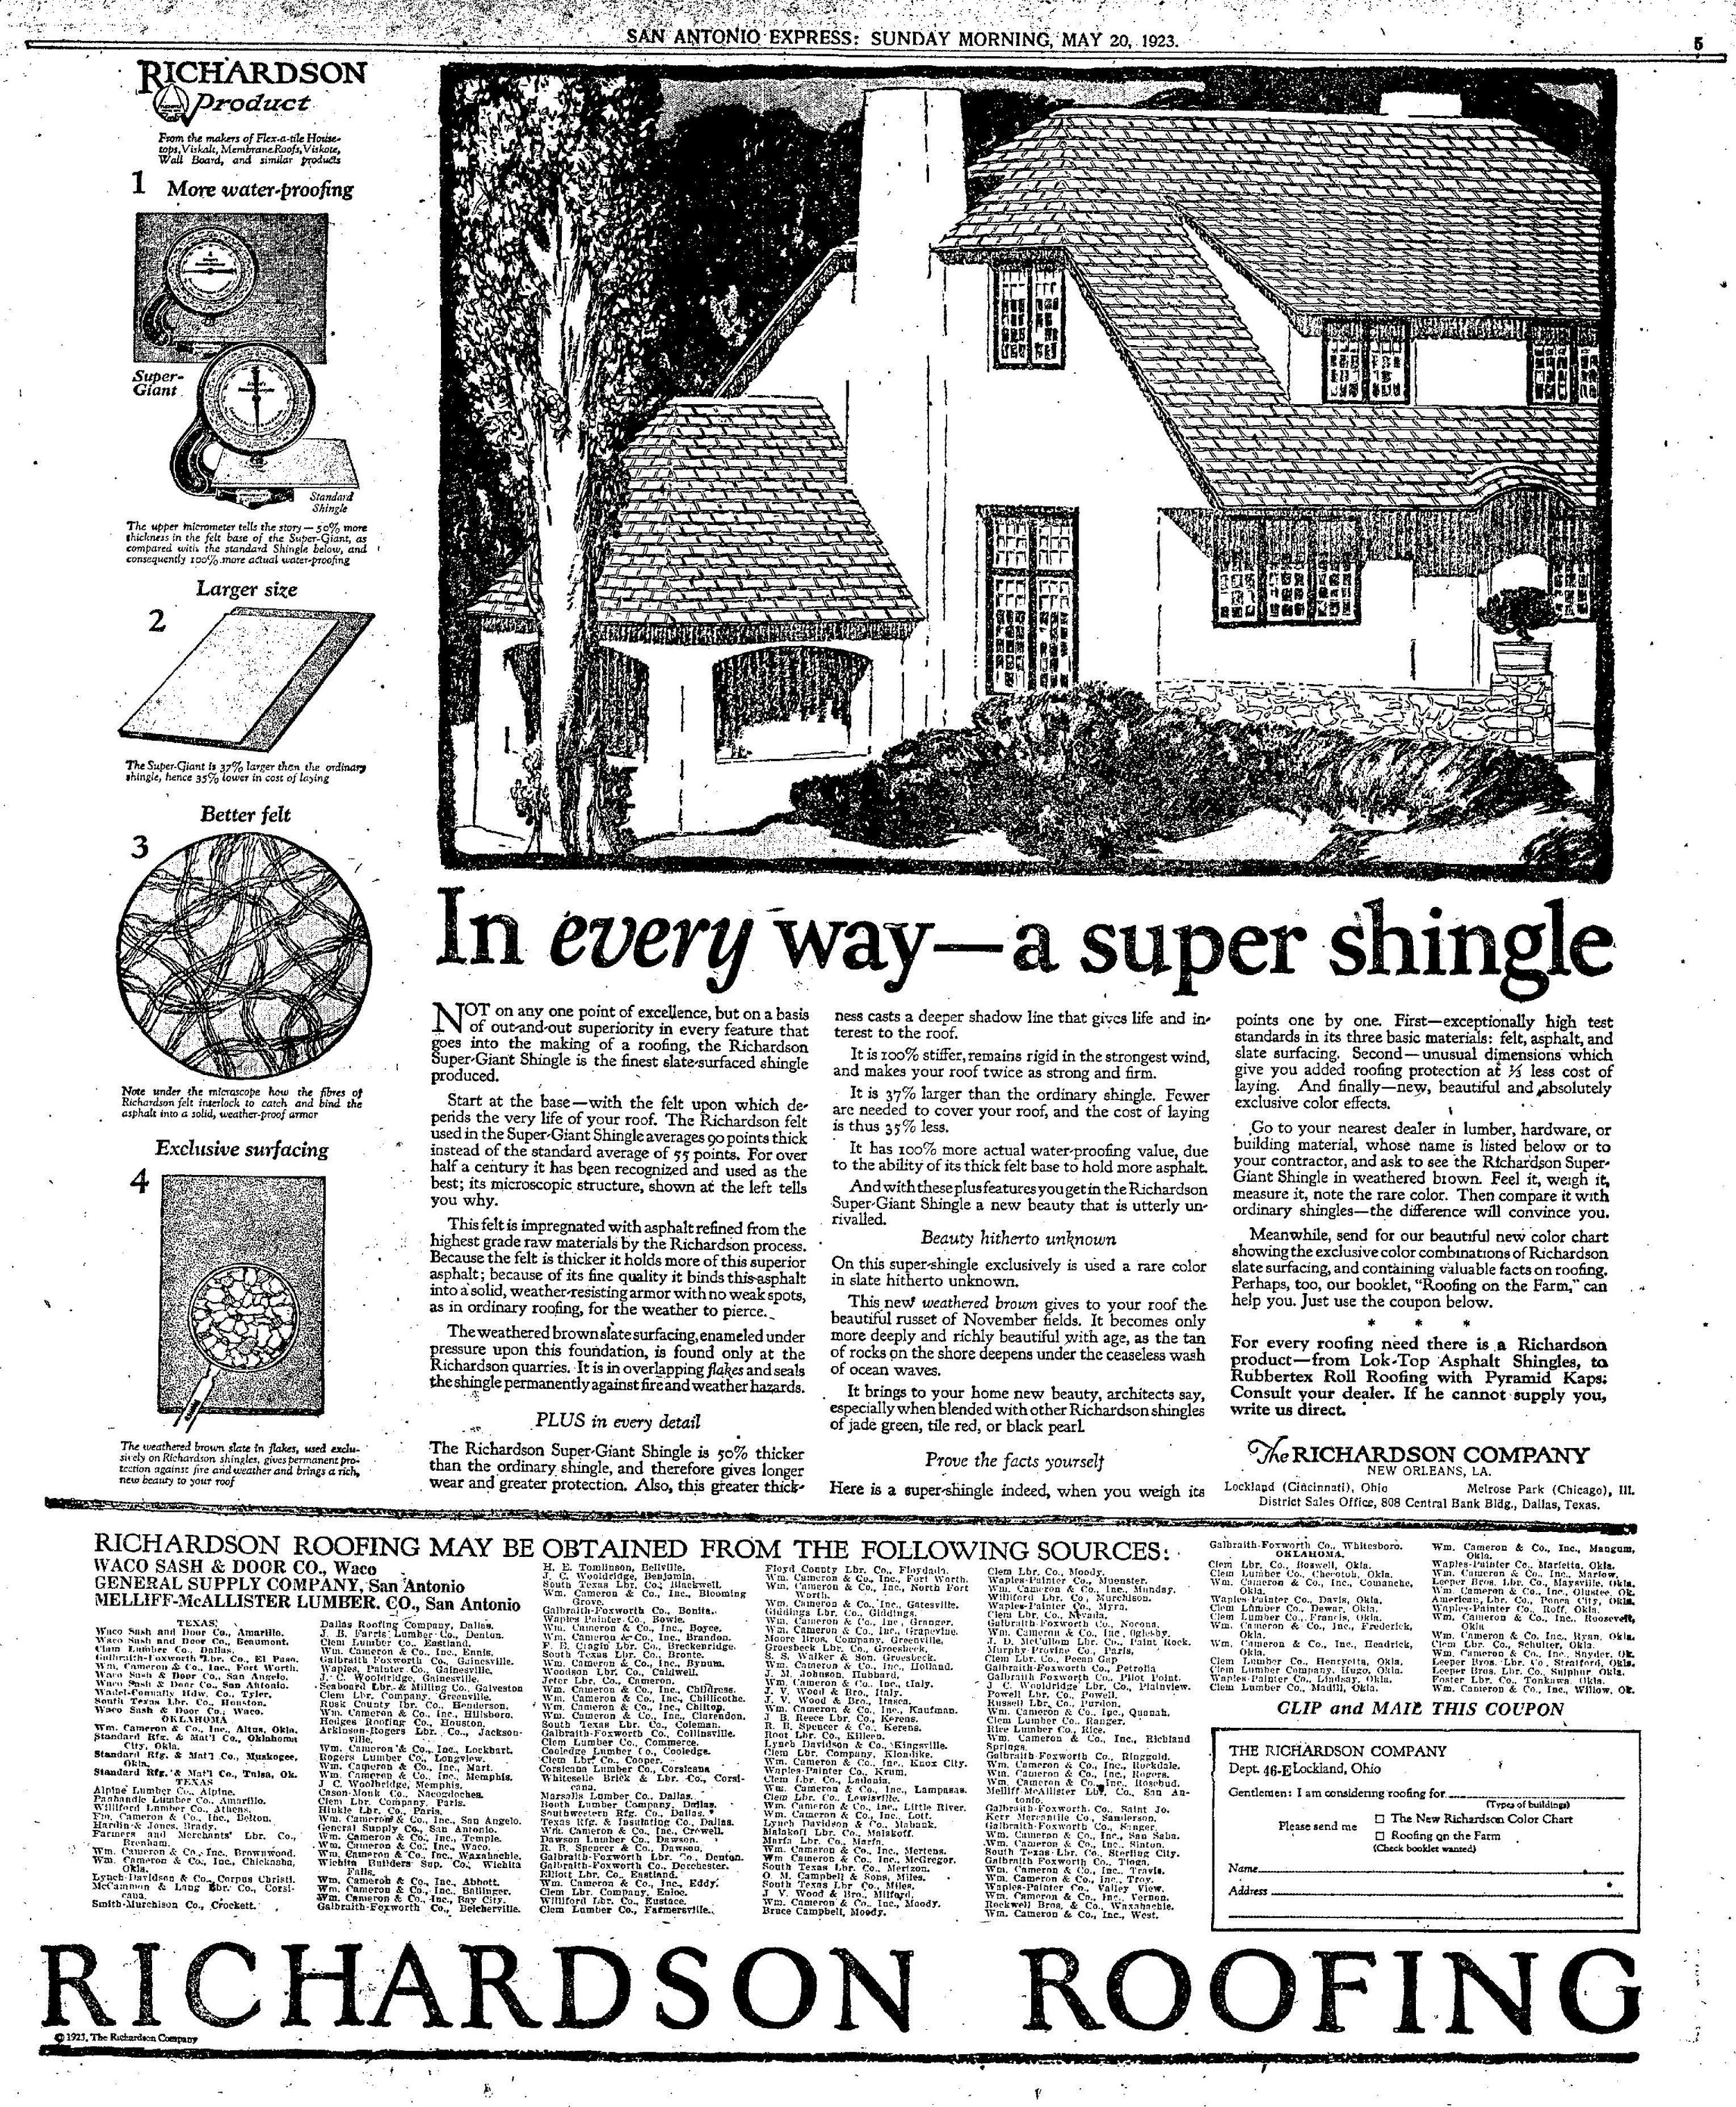 A 1923 advertisement in the San Antonio Express News for an asphalt composition shingle product.